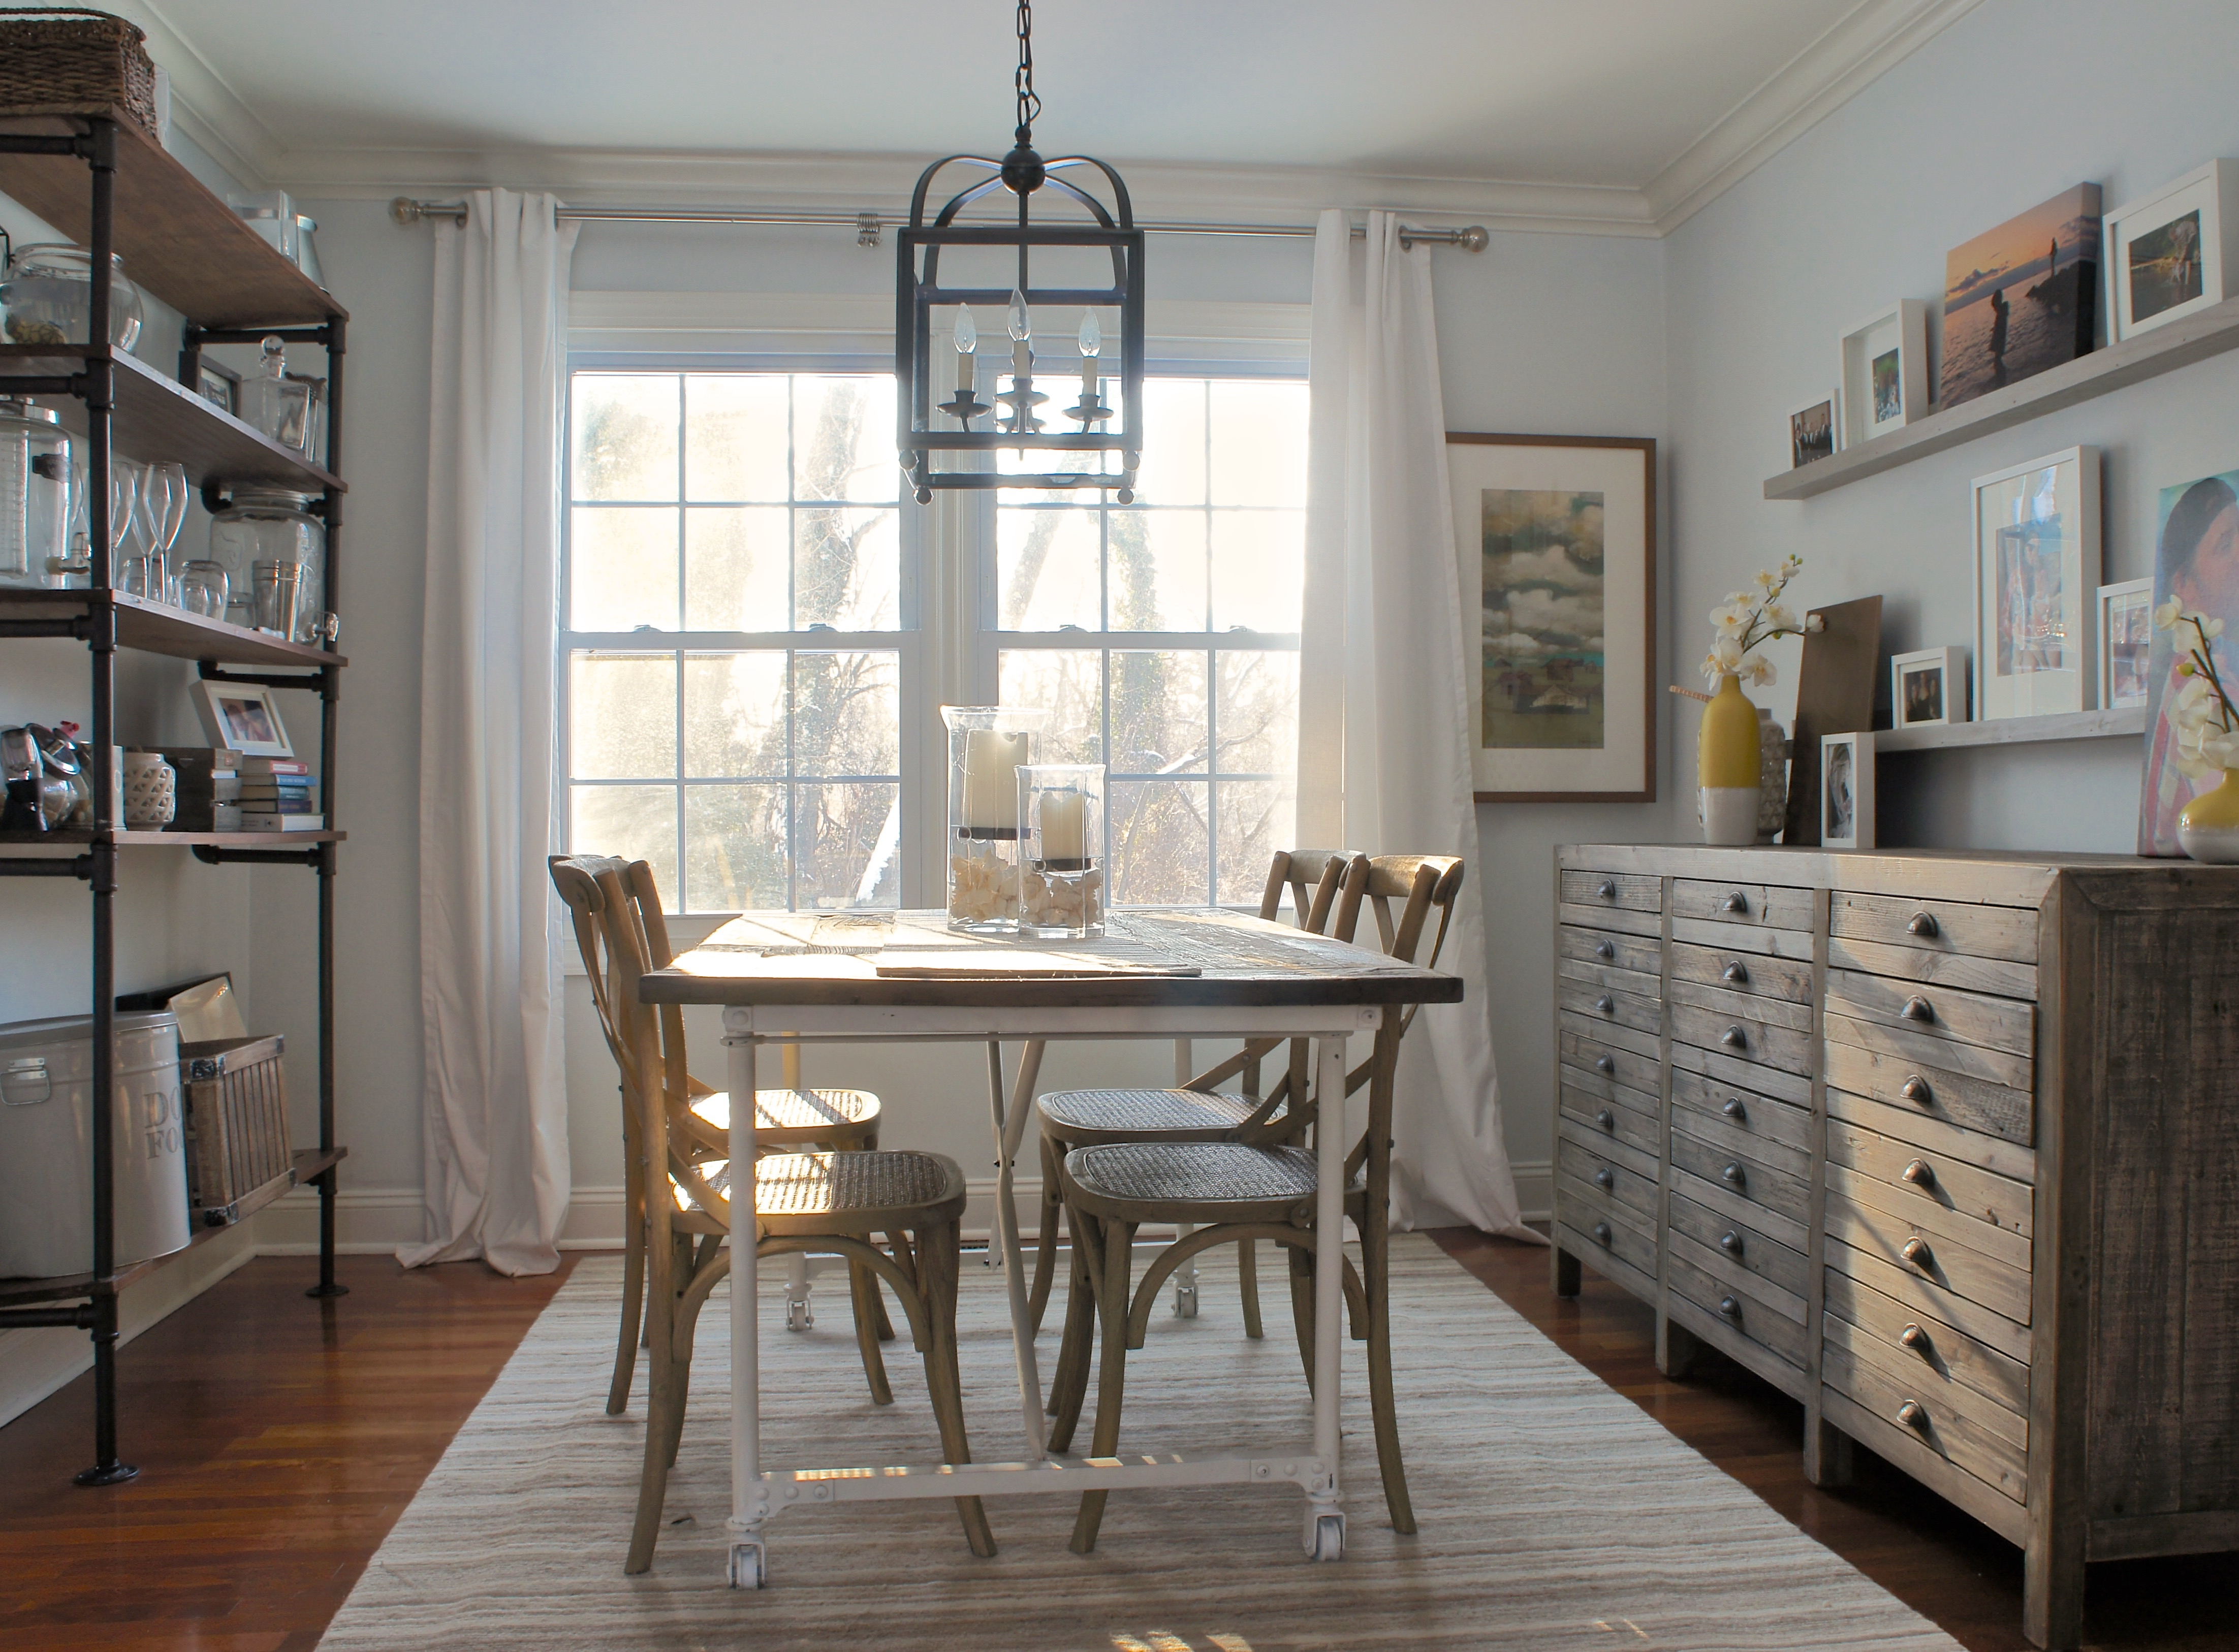 Restoration Hardware Madeline Chair Chairs Model